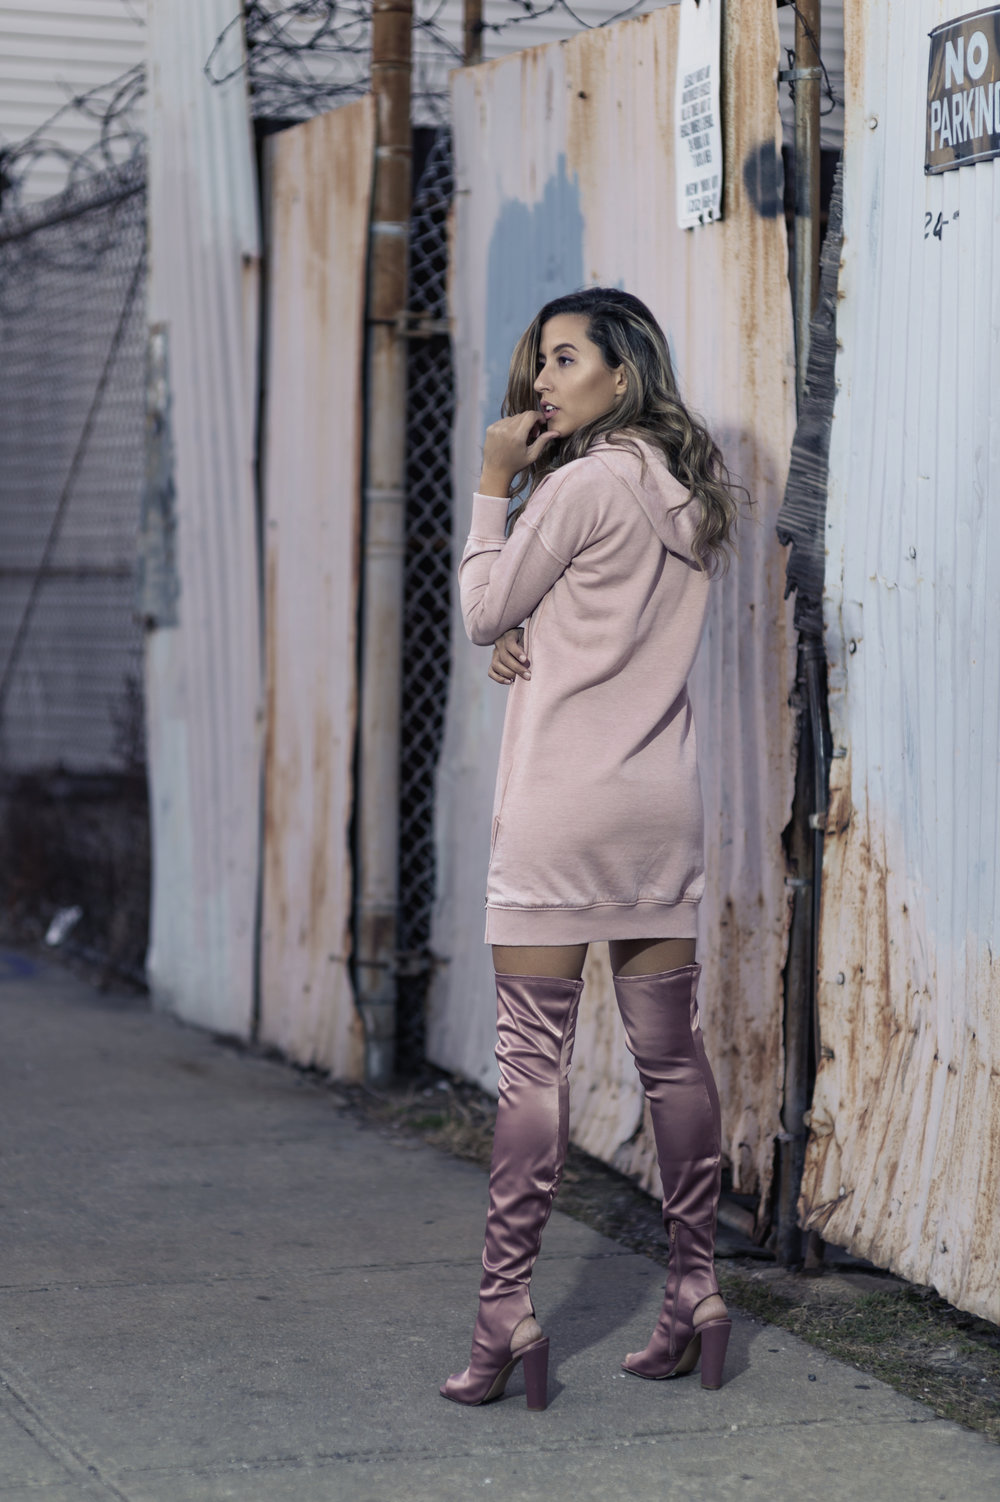 fashion-blogger-raquel-paiva-wears-pink-sweatshirt-dress-pink-boots